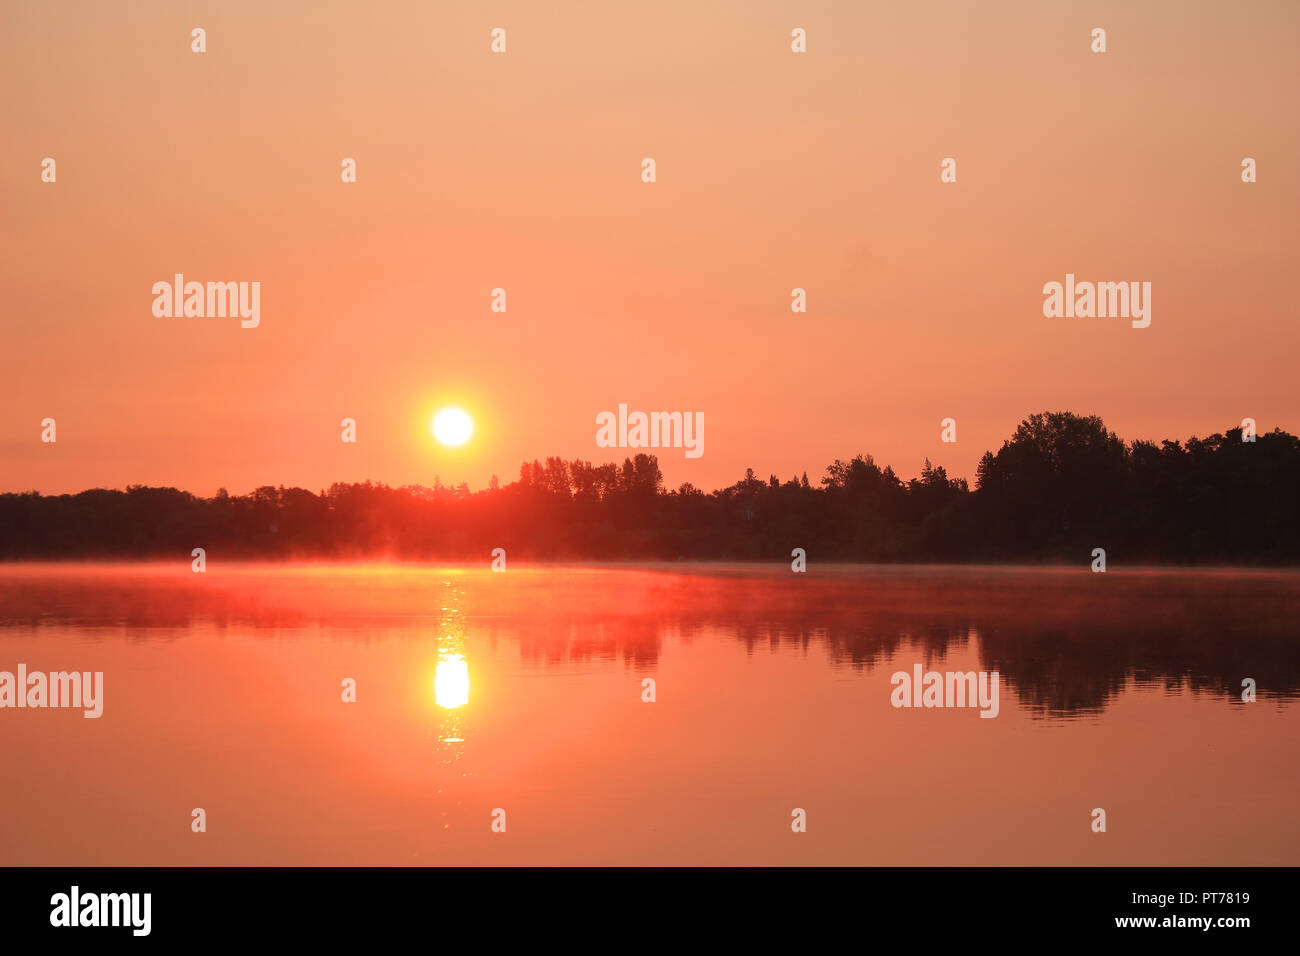 Colorful rising sun - Stock Image